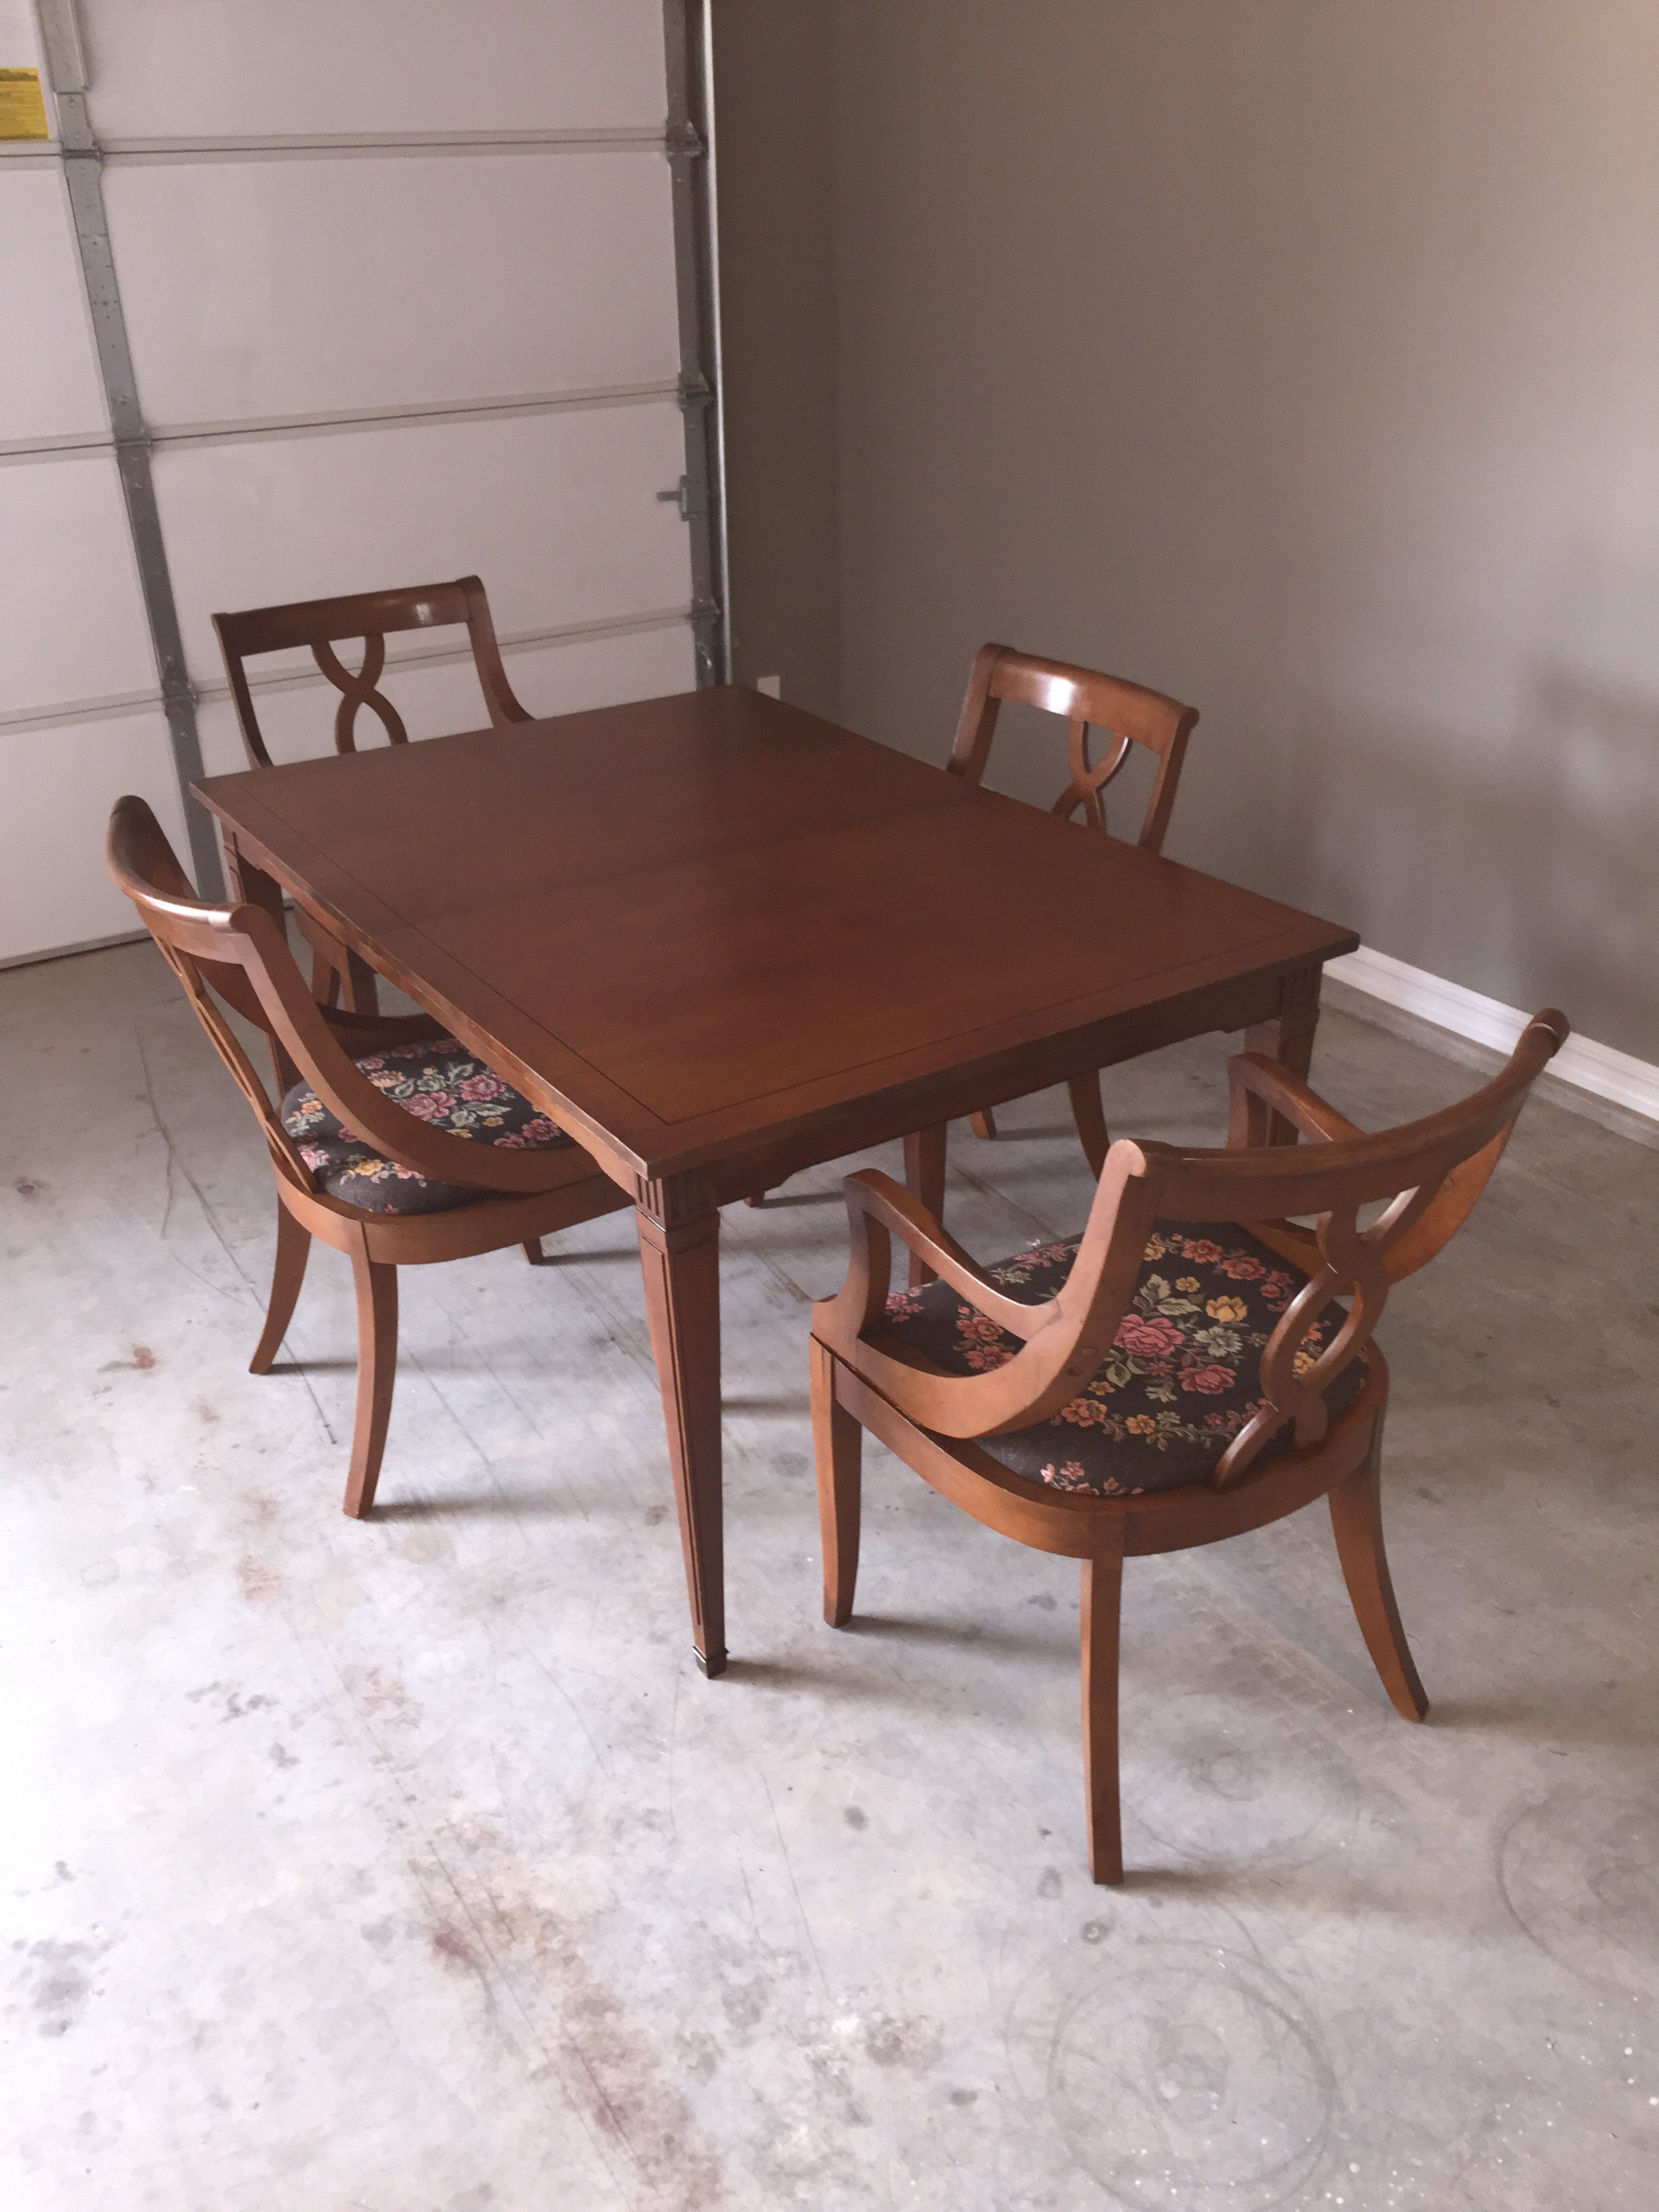 bernhardt dining room set haven this very elegant table and chair set from the bernhardt furniture company of lenore north 1950s dining table chairs set chairish